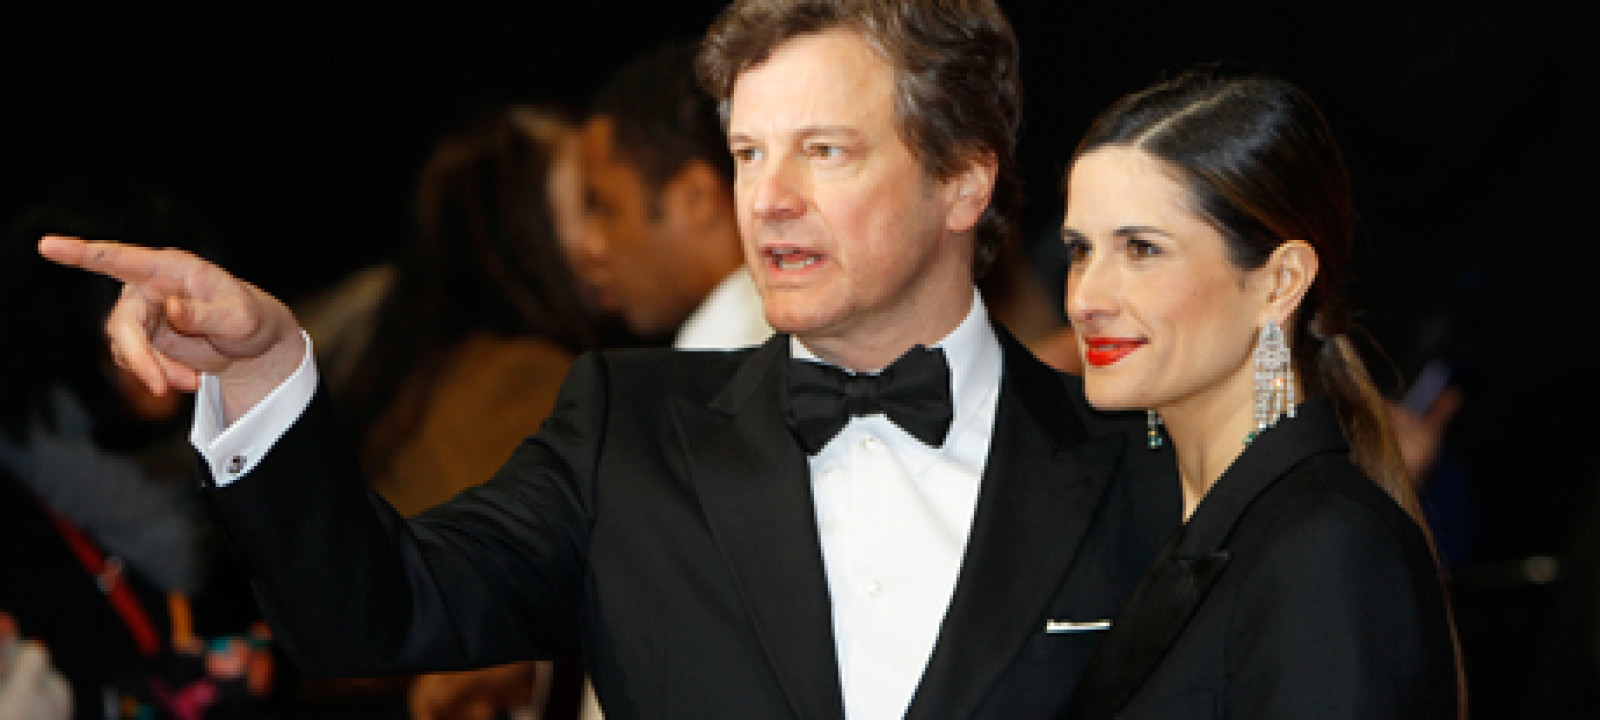 Photos from the BAFTAs red carpet – Colin Firth with wife Livia Giuggioli